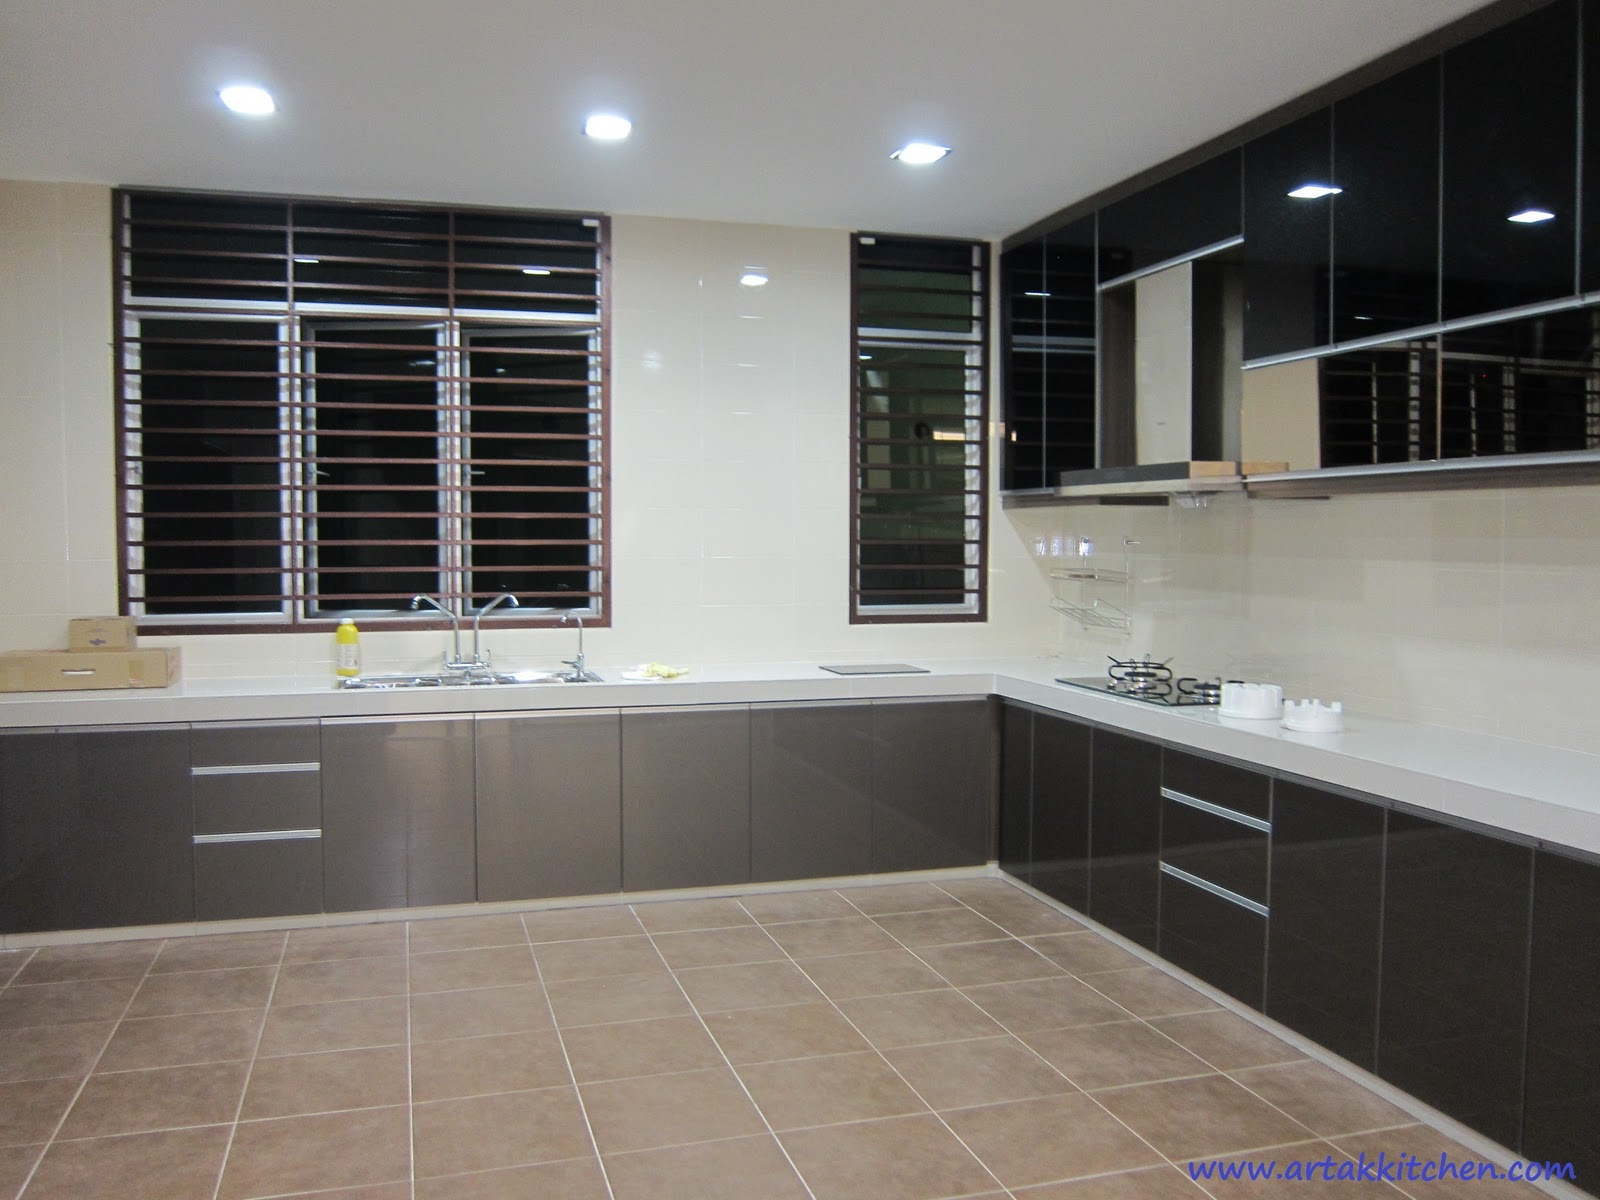 Intech kitchen sdn bhd new kitchen cabinet design for Kitchen cabinets 4g